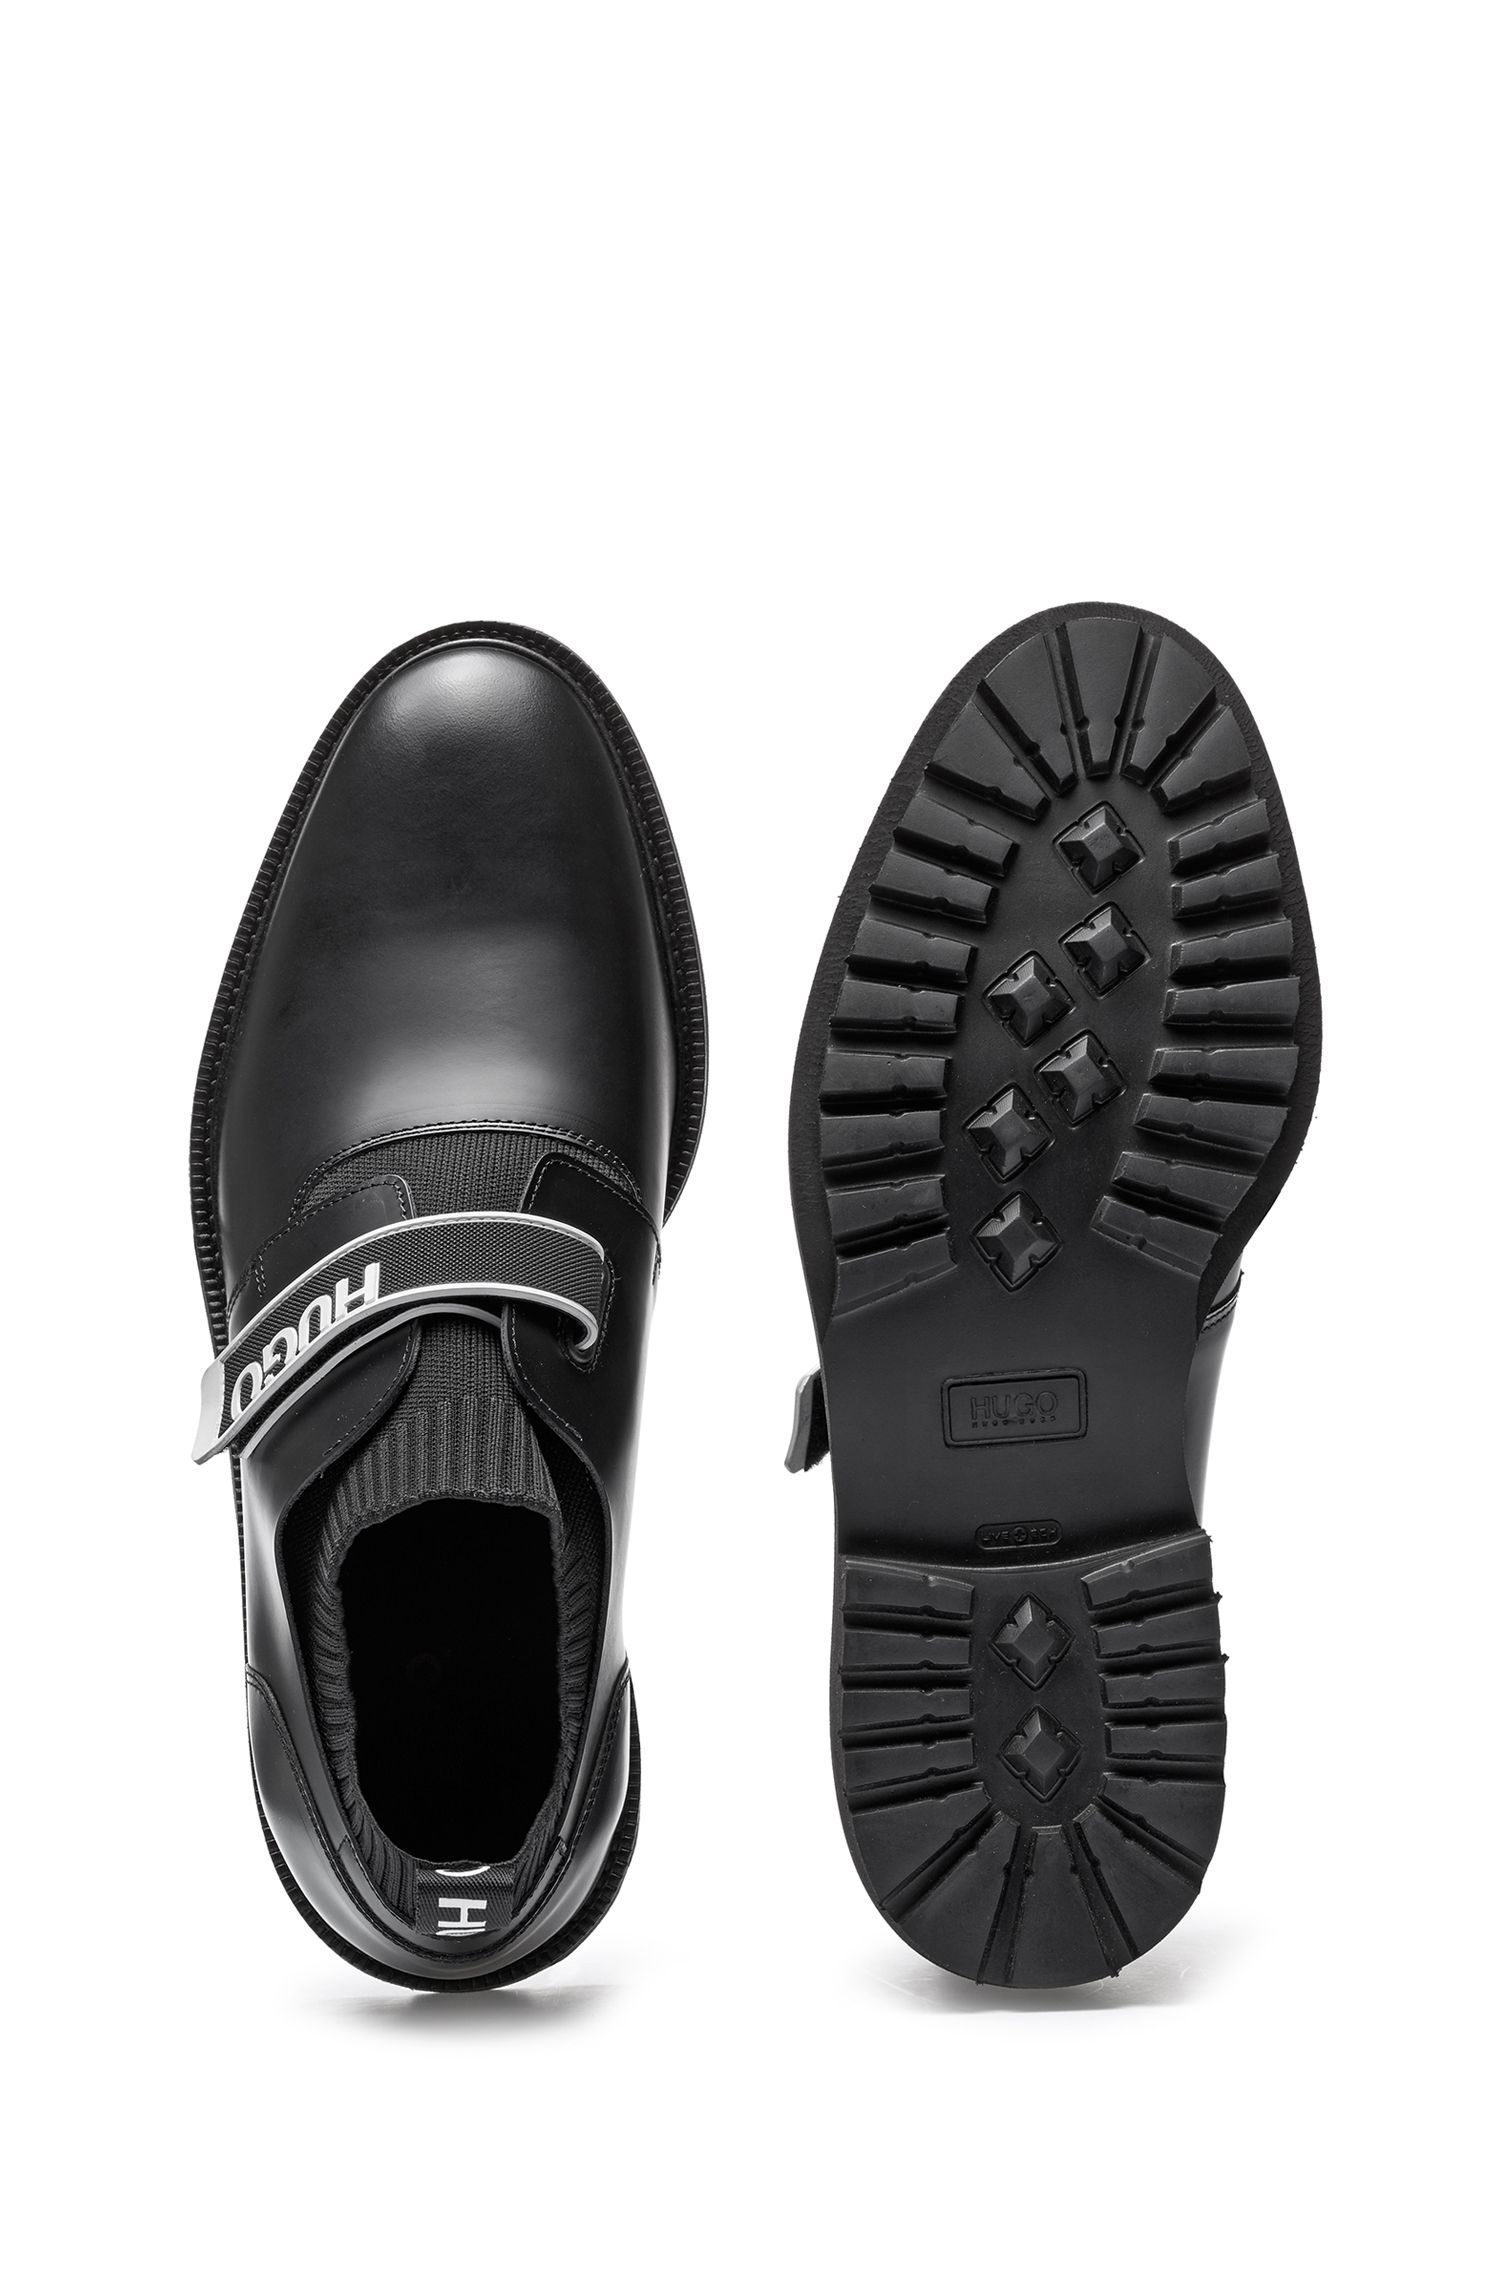 Leather slip-on shoes with branded riptape strap, Black